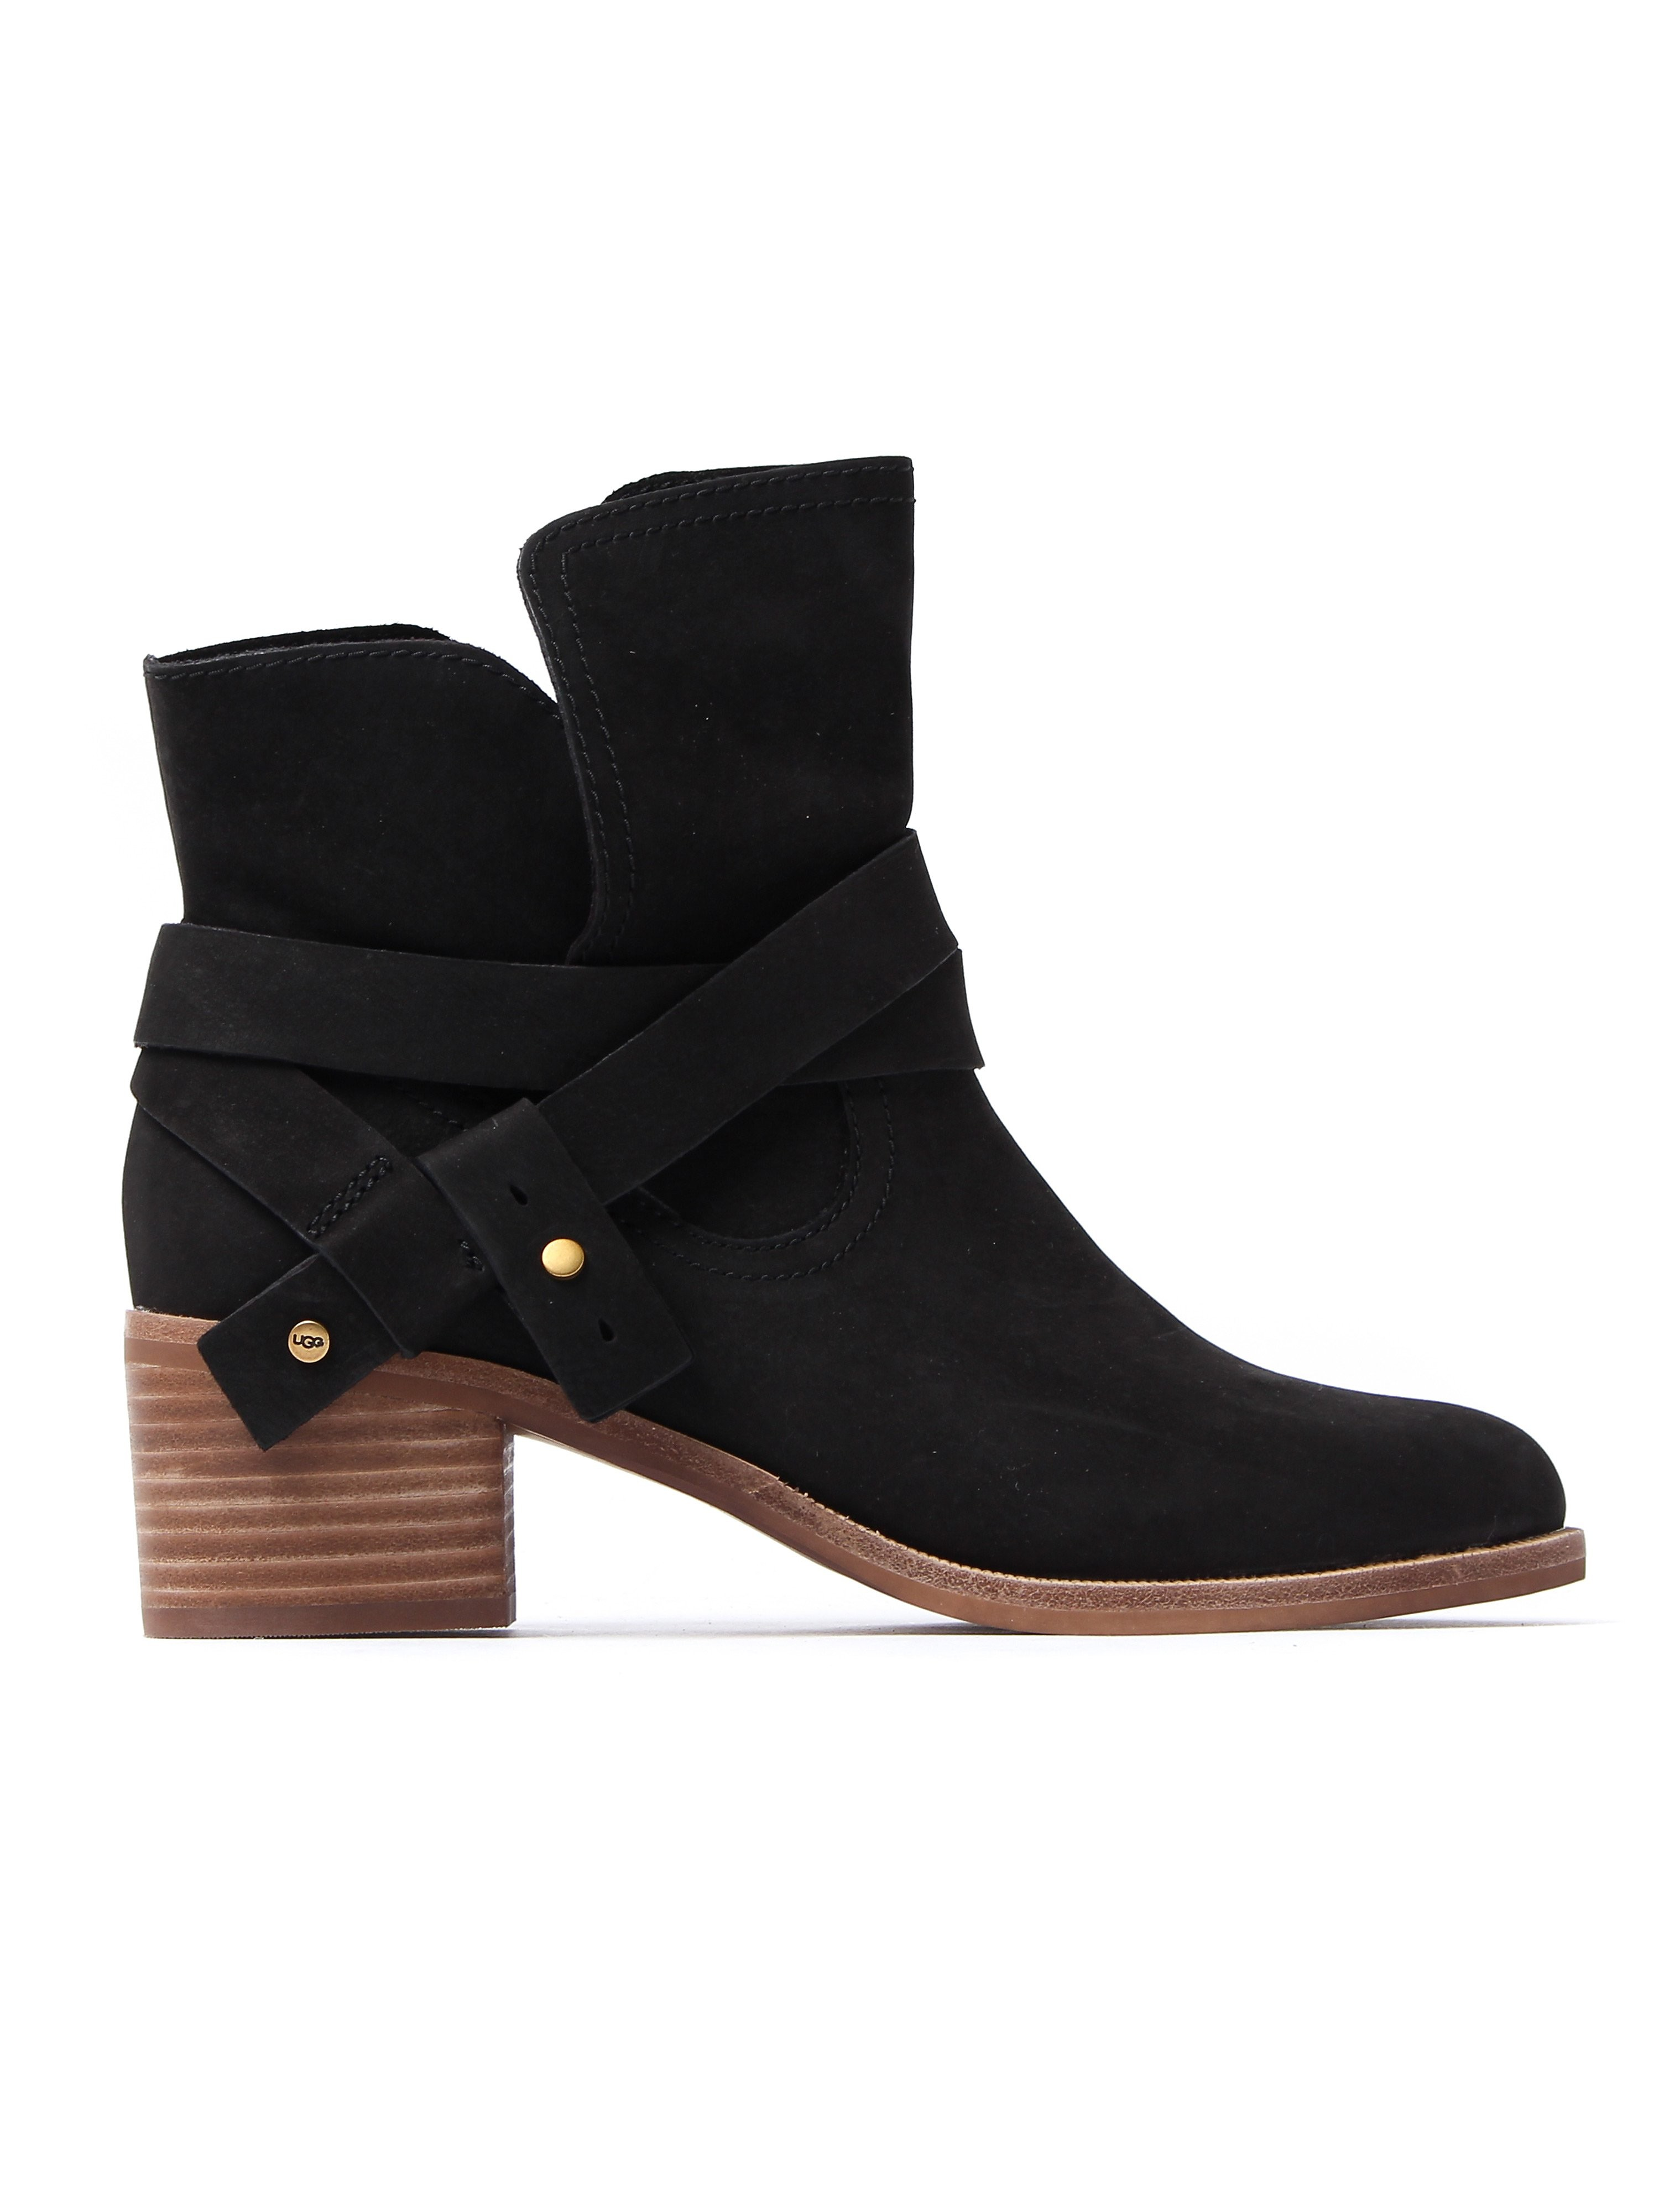 UGG Women's Elora Ankle Boots - Black Nubuck